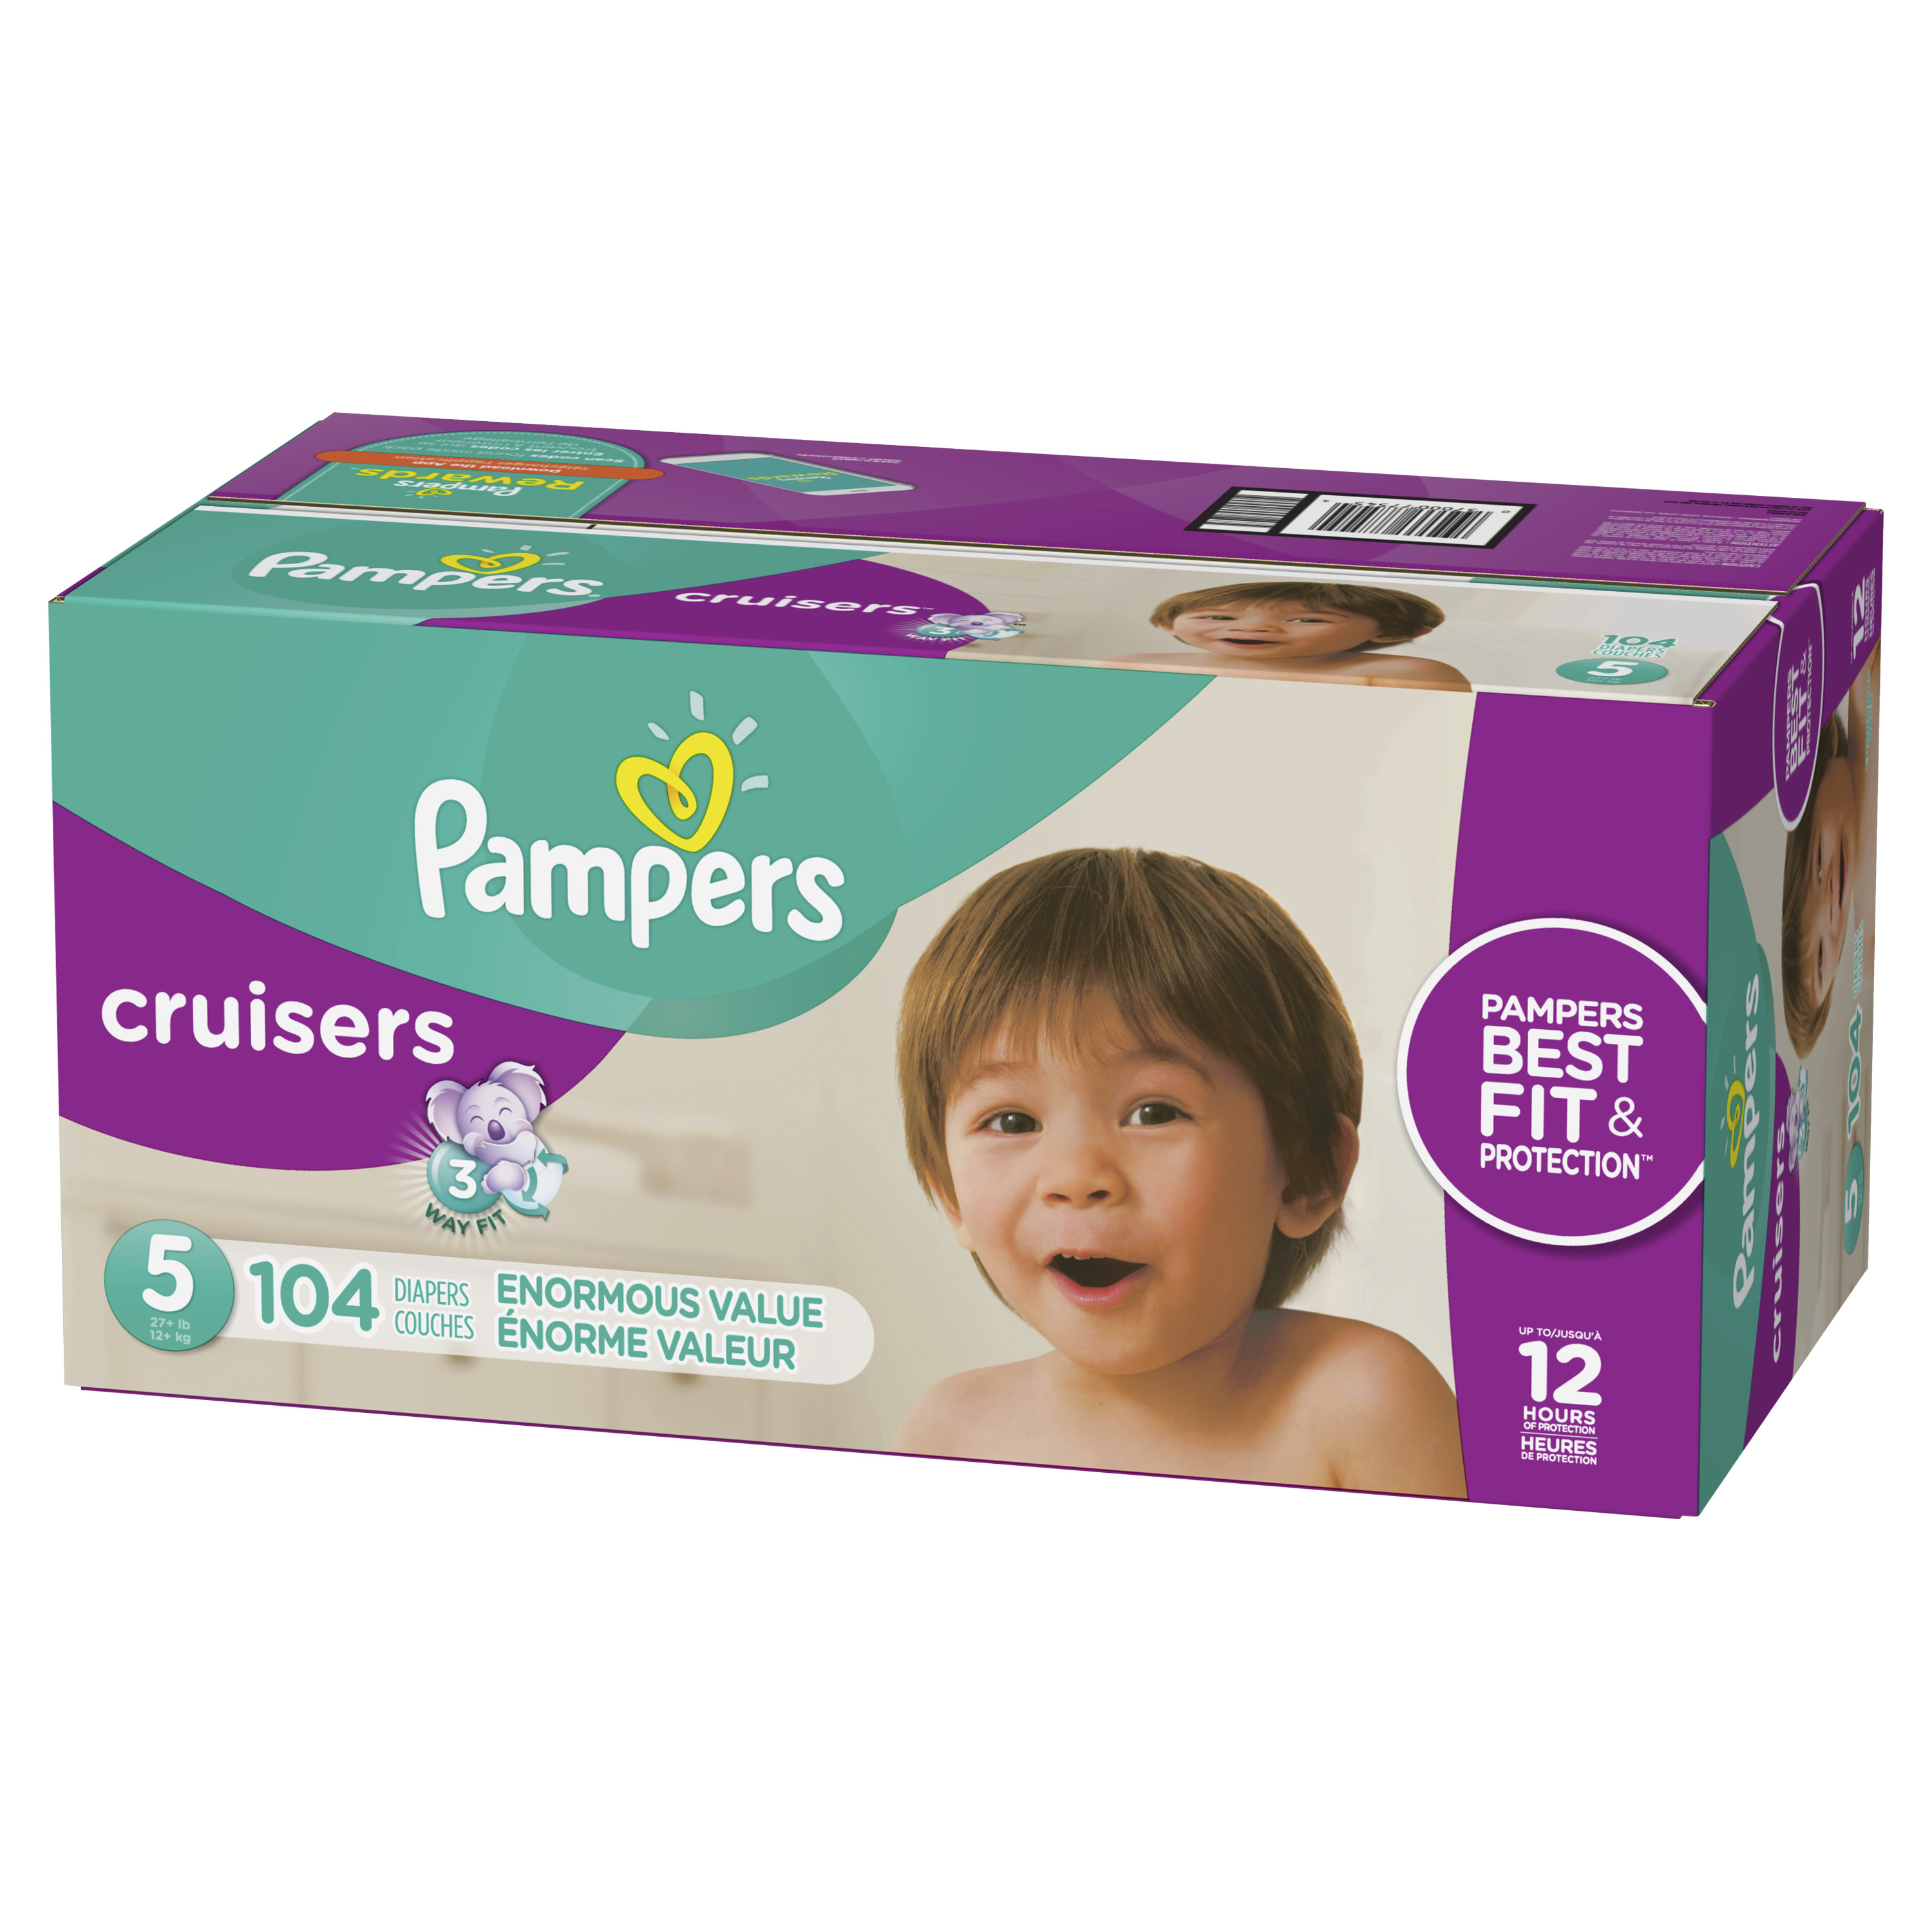 Pampers Cruisers Diapers, Size 5, 104 Count